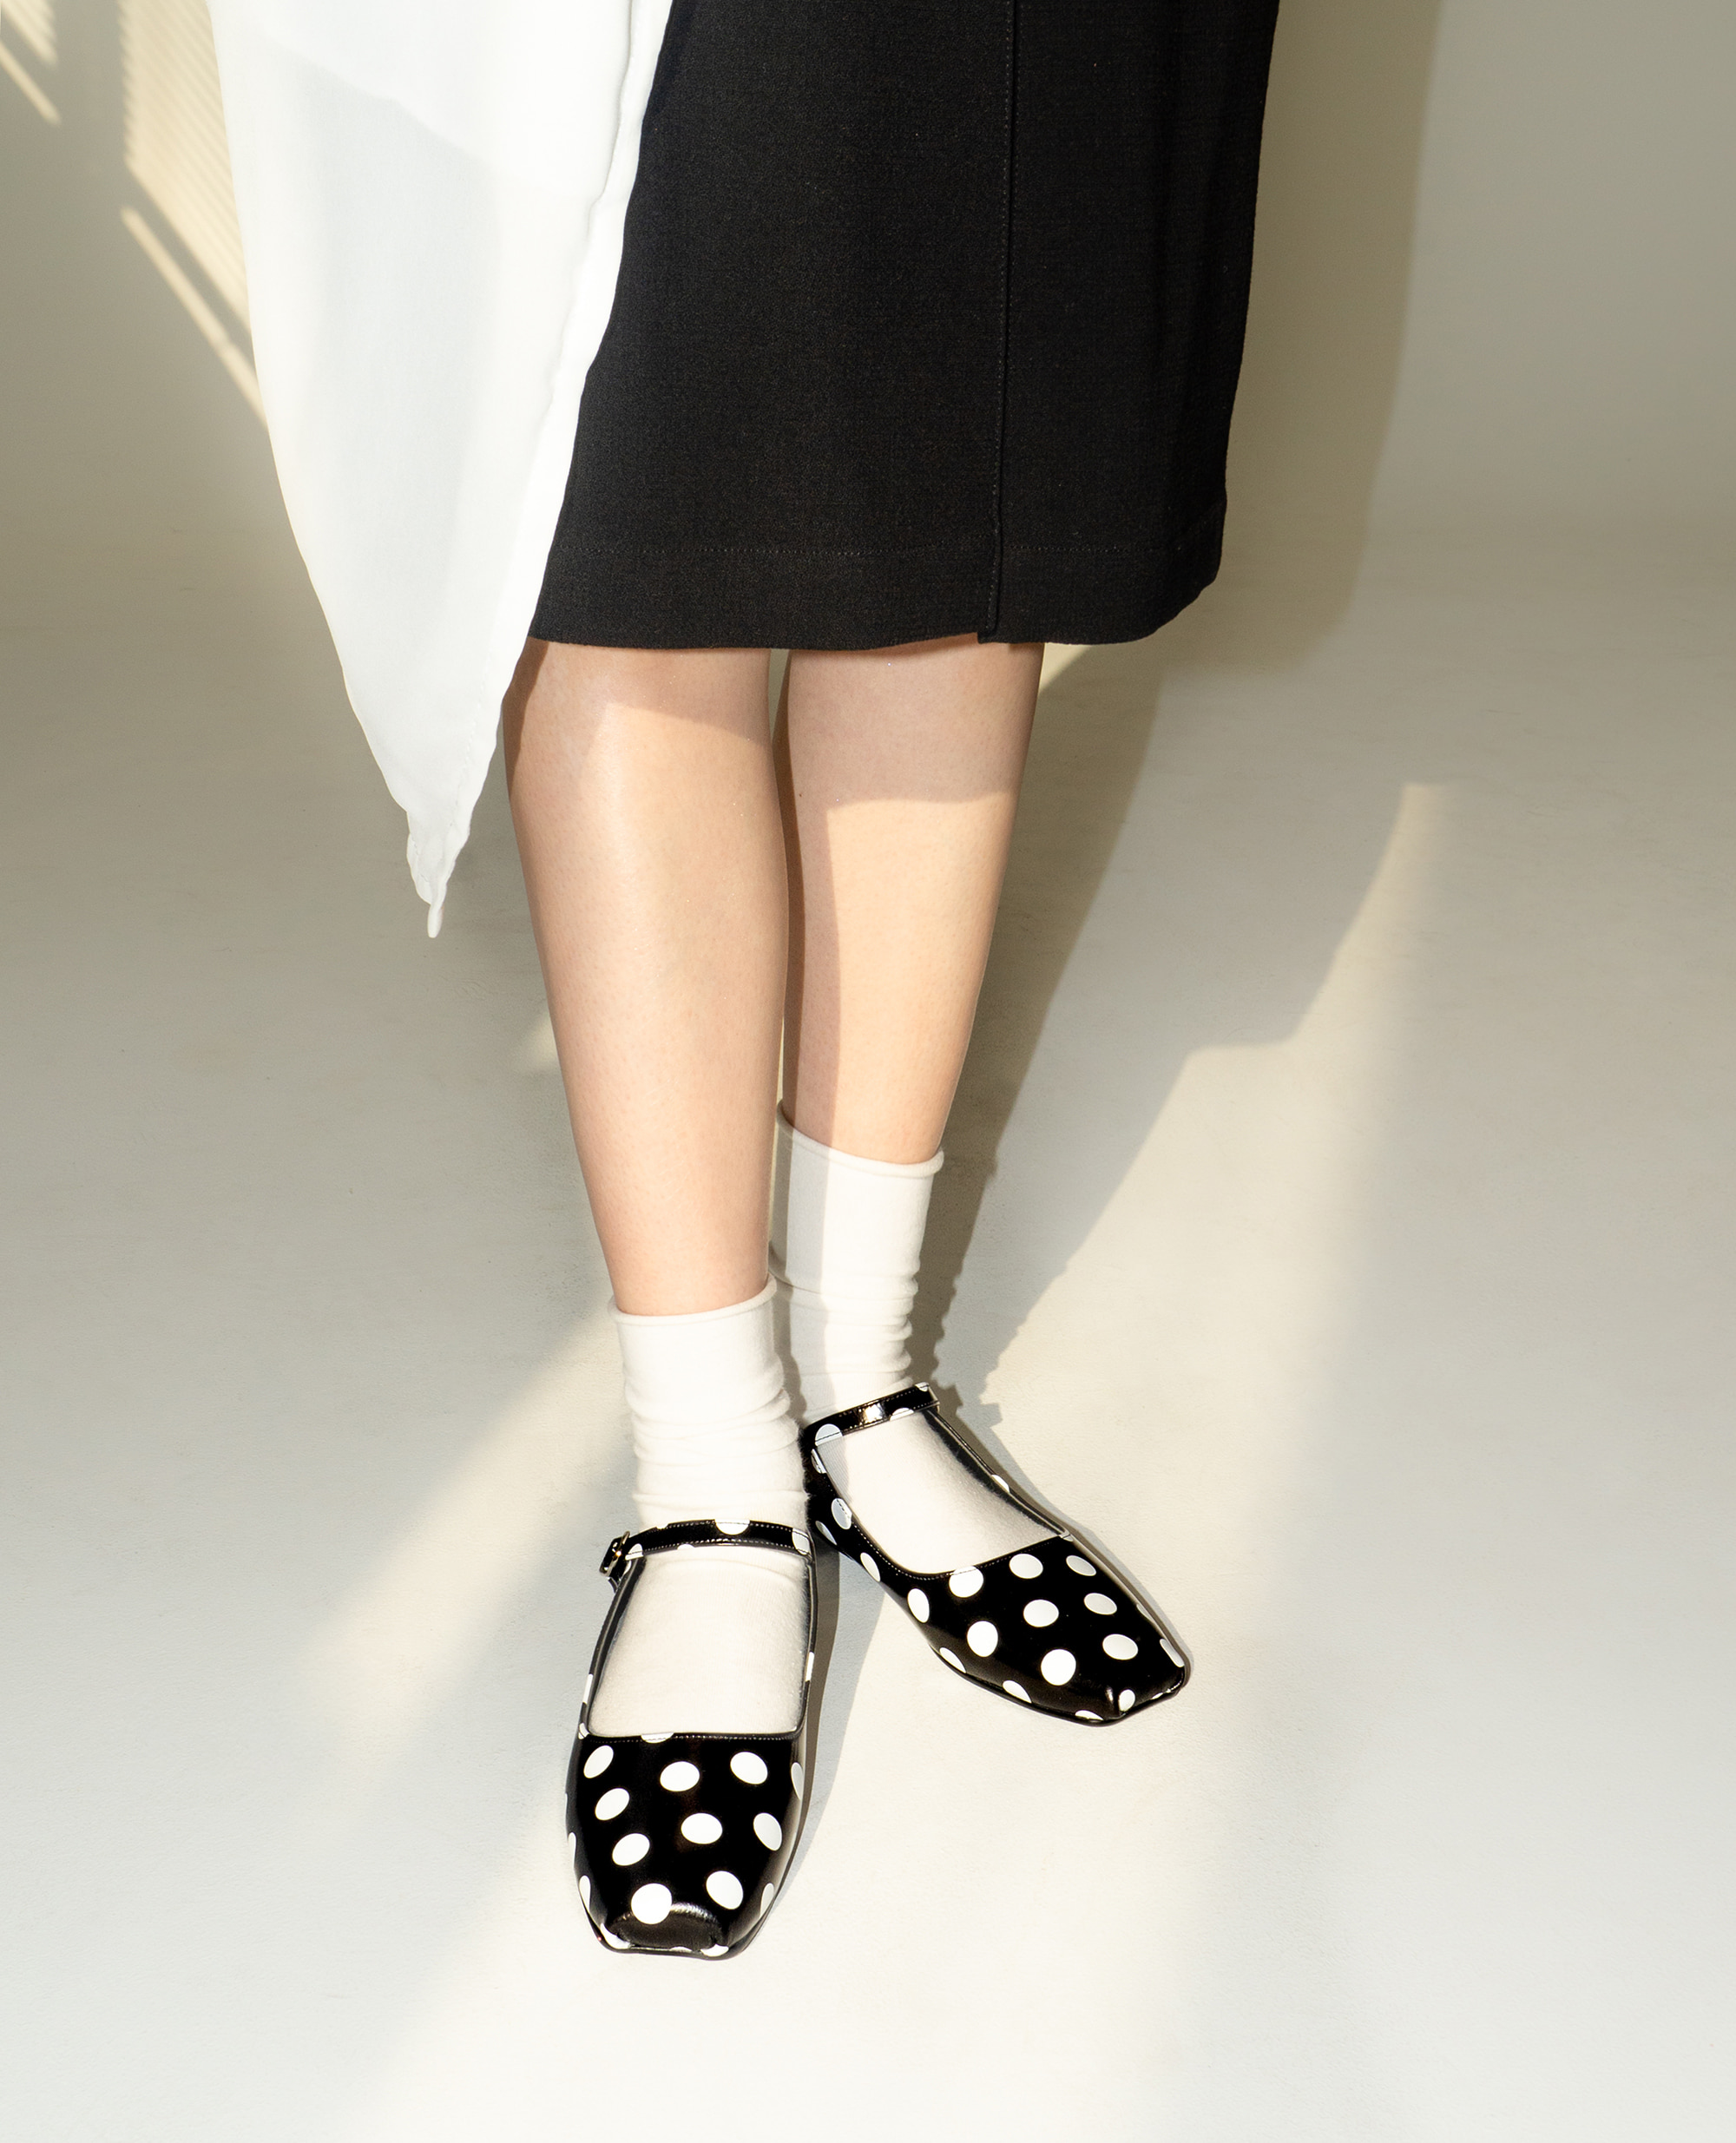 Ballet Toe Mary jane Flats | Polka dot